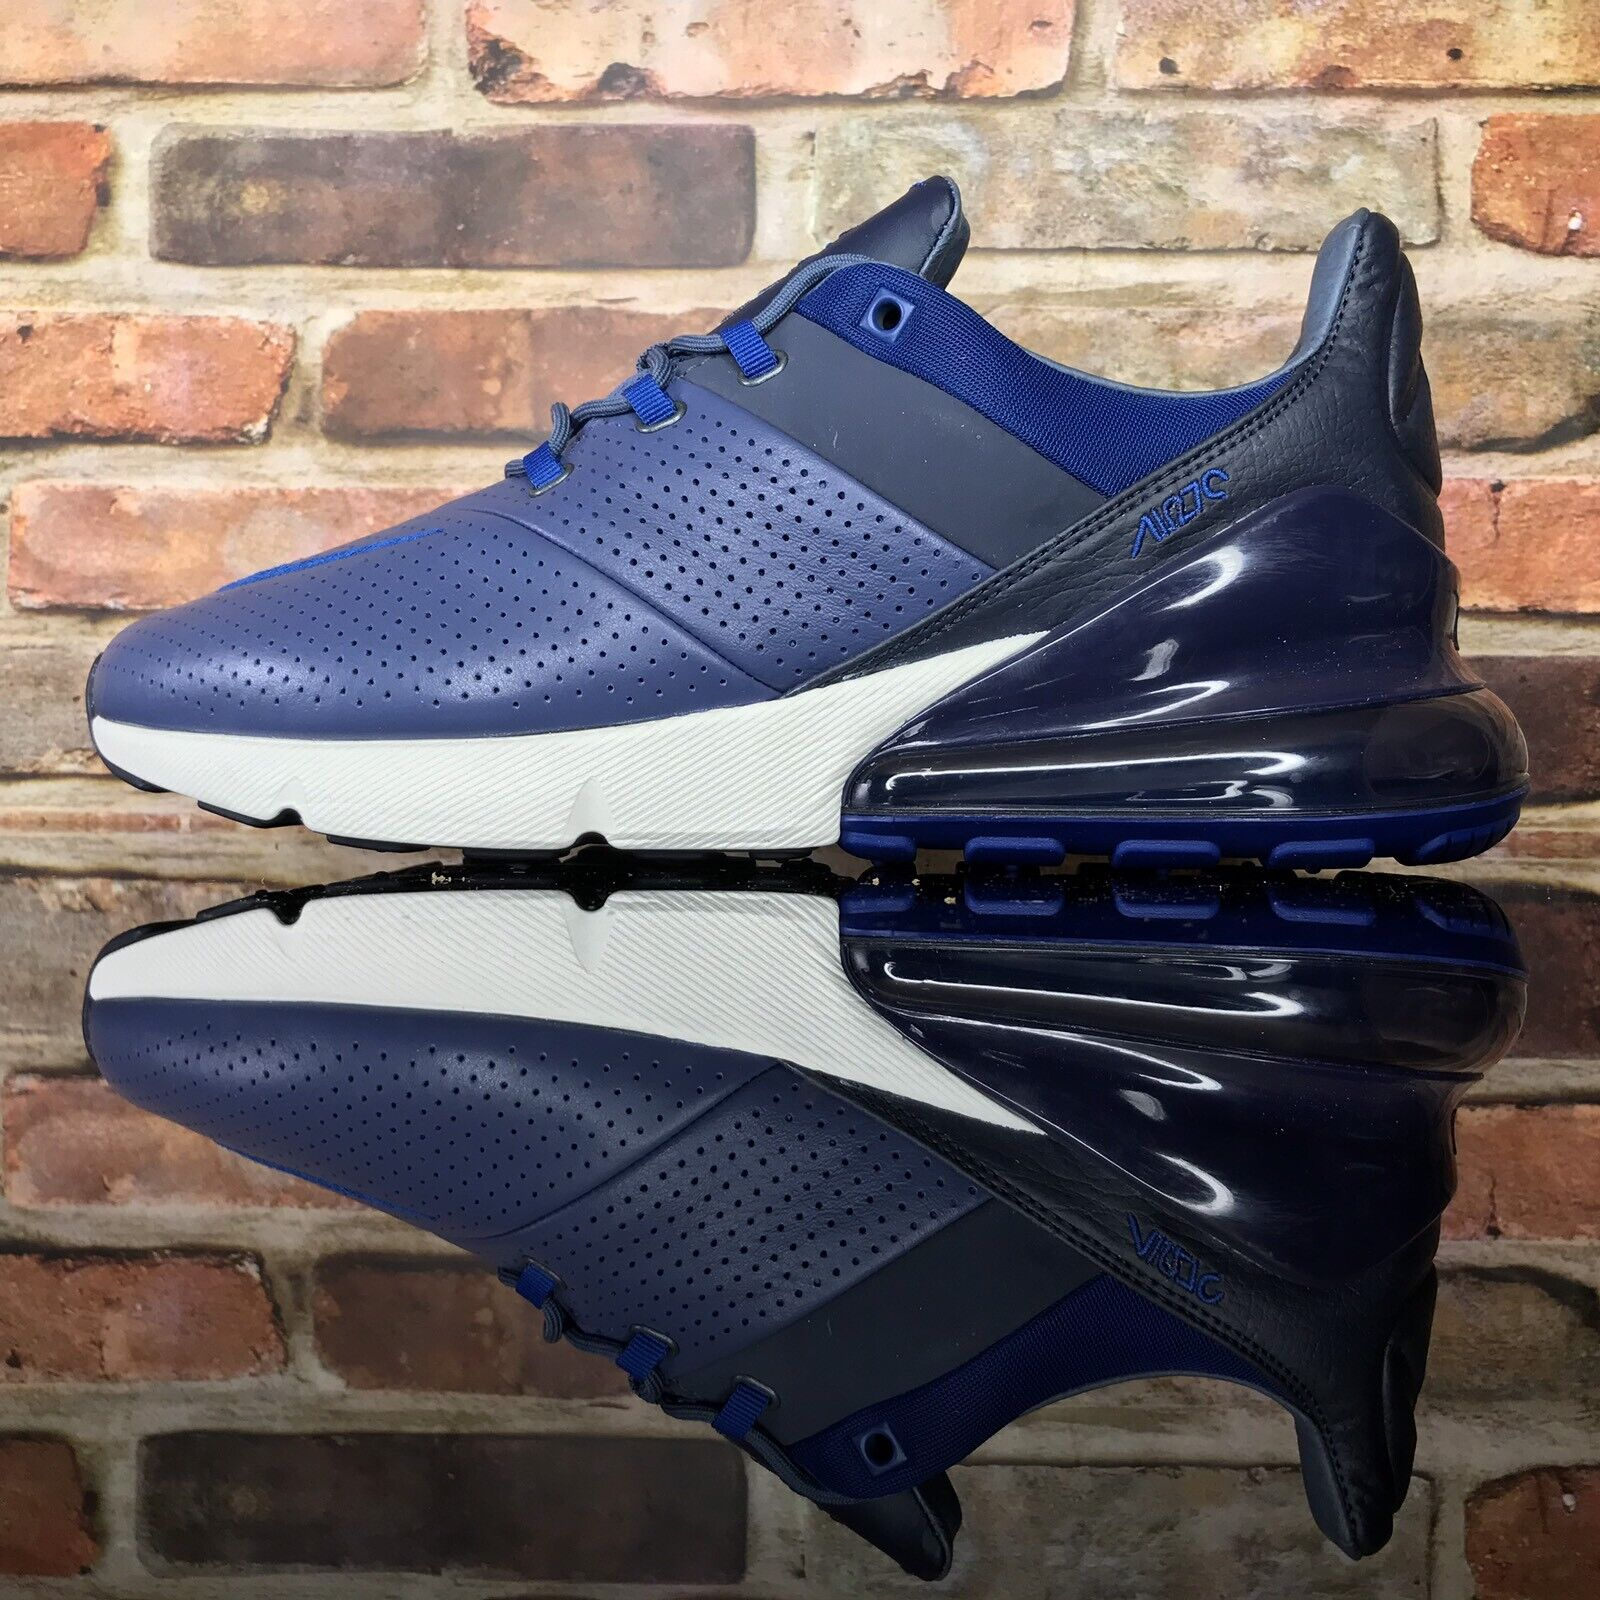 Nike Air Max 270 Premium Leather Diffused bluee Gym bluee Size 10.5 AO8283-400